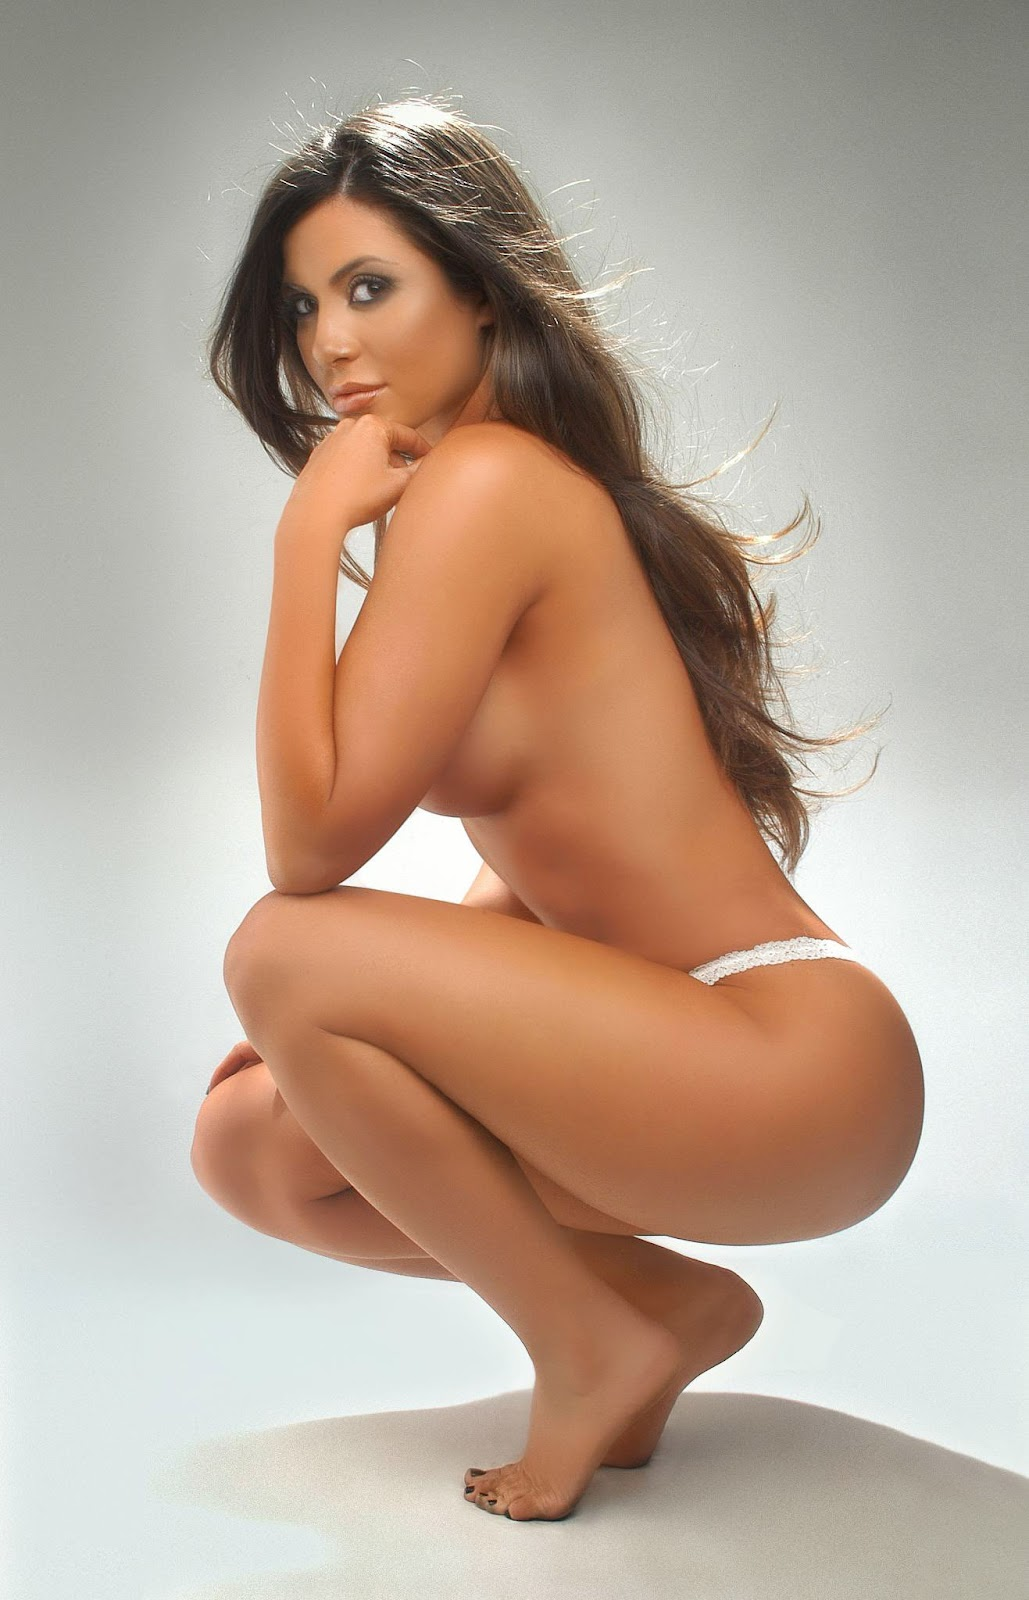 Julia Orayen was Playboy's playmate in the September 2008 edition of